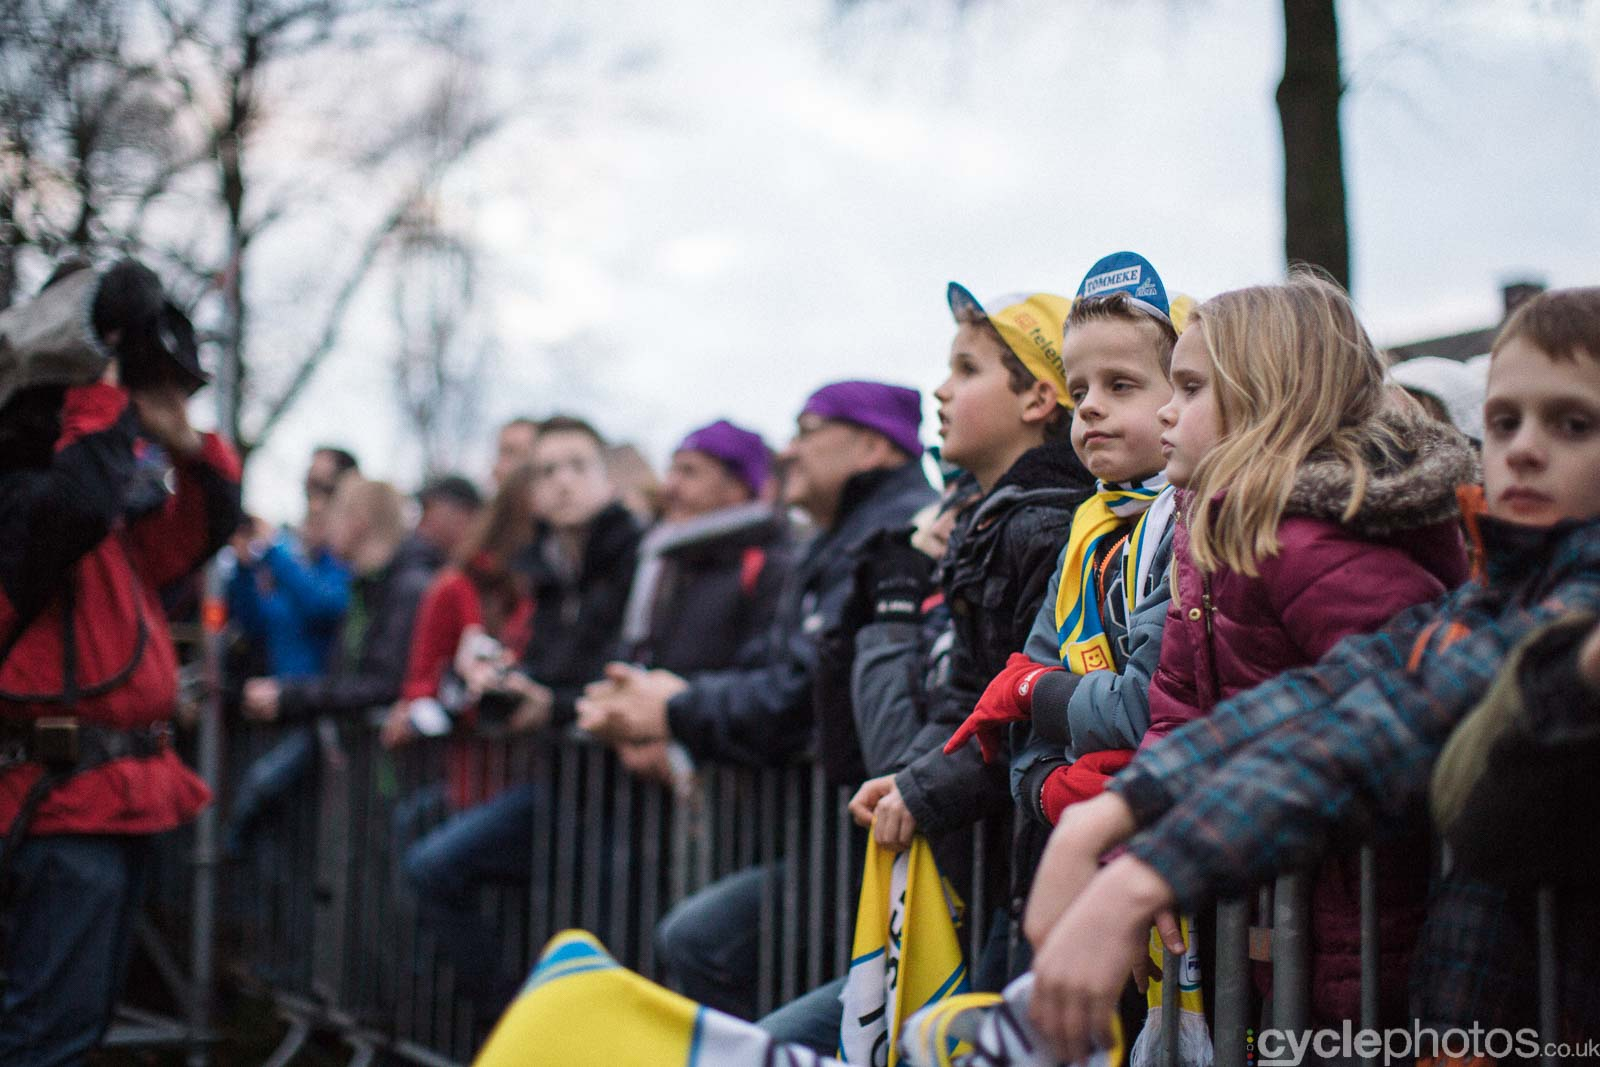 2015-cyclephotos-cyclocross-azencross-161657-supporters